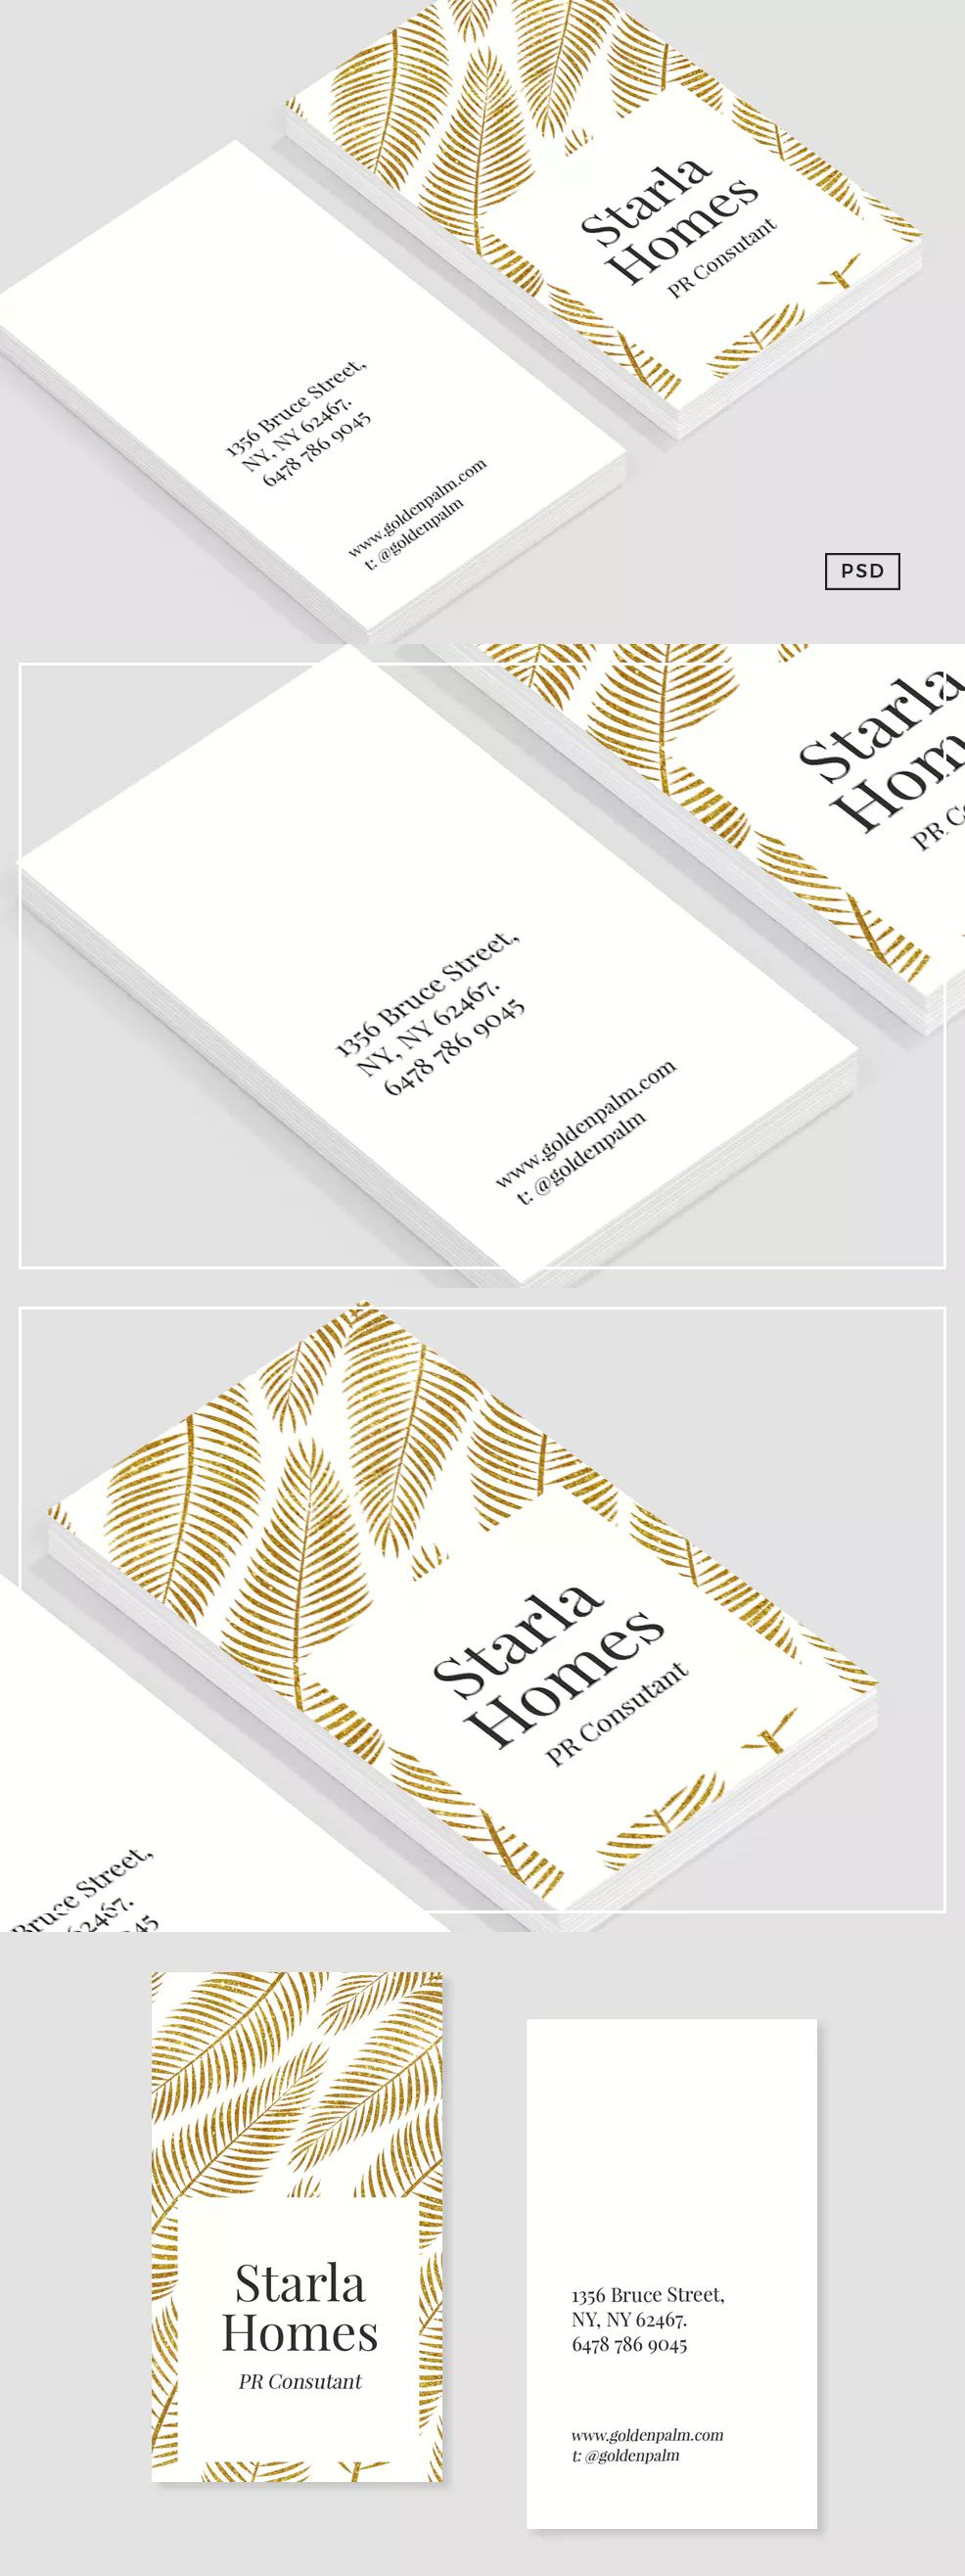 Golden Palm Business Card Template By 83oranges On Envato Elements Business Card Template Business Card Template Psd Business Cards